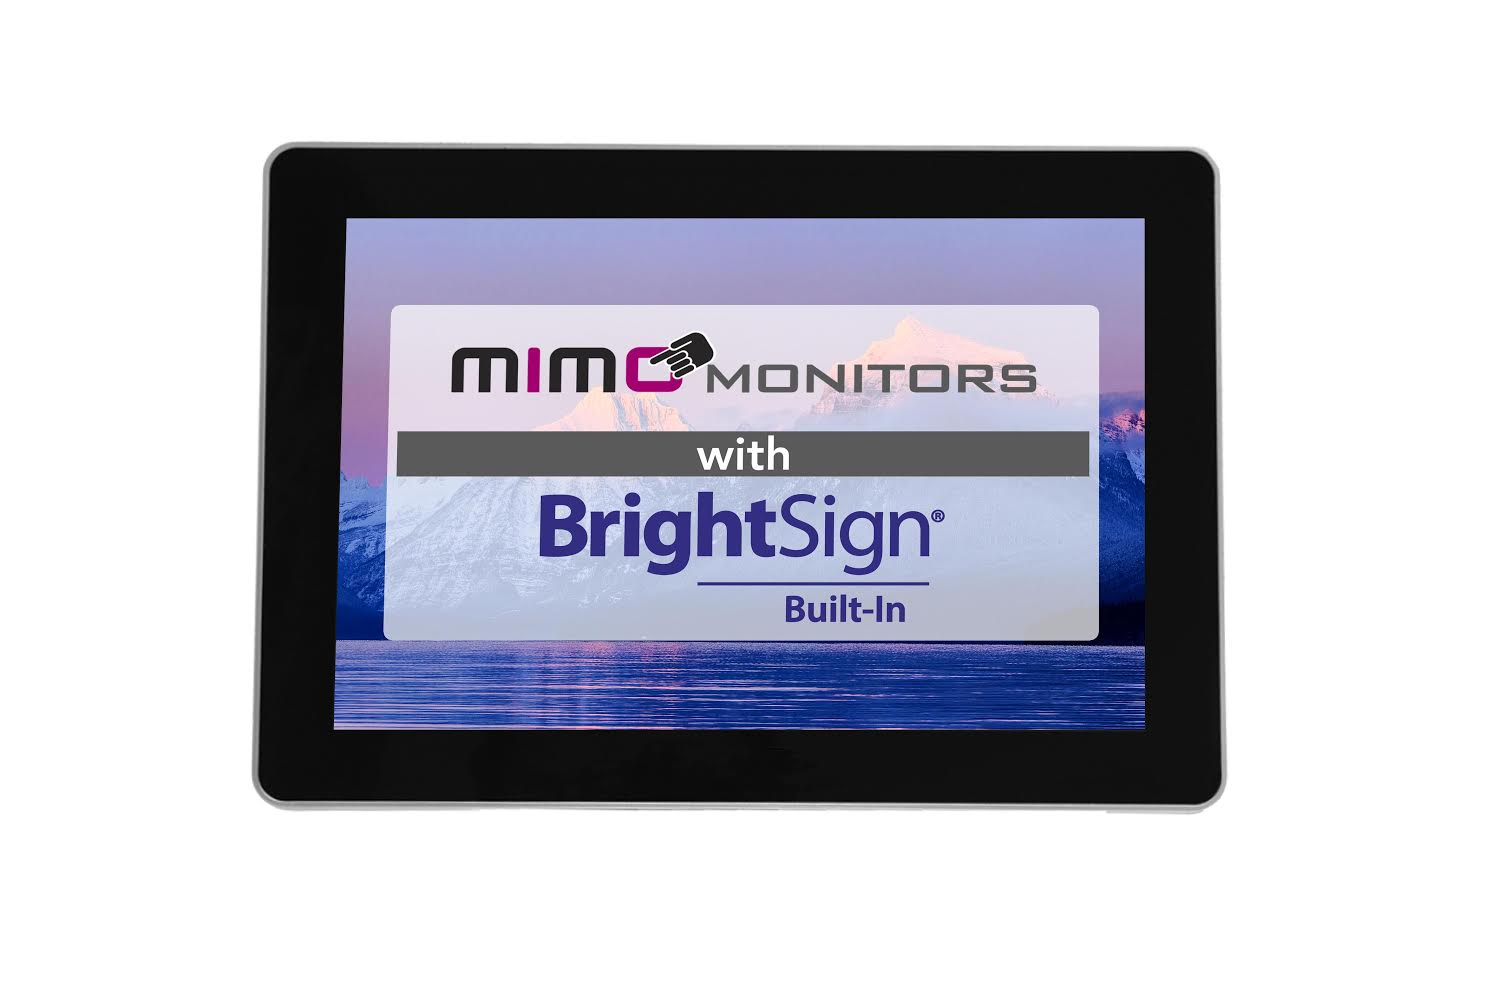 Launch of the Mimo Vue with BrightSign Built-In enclosed display